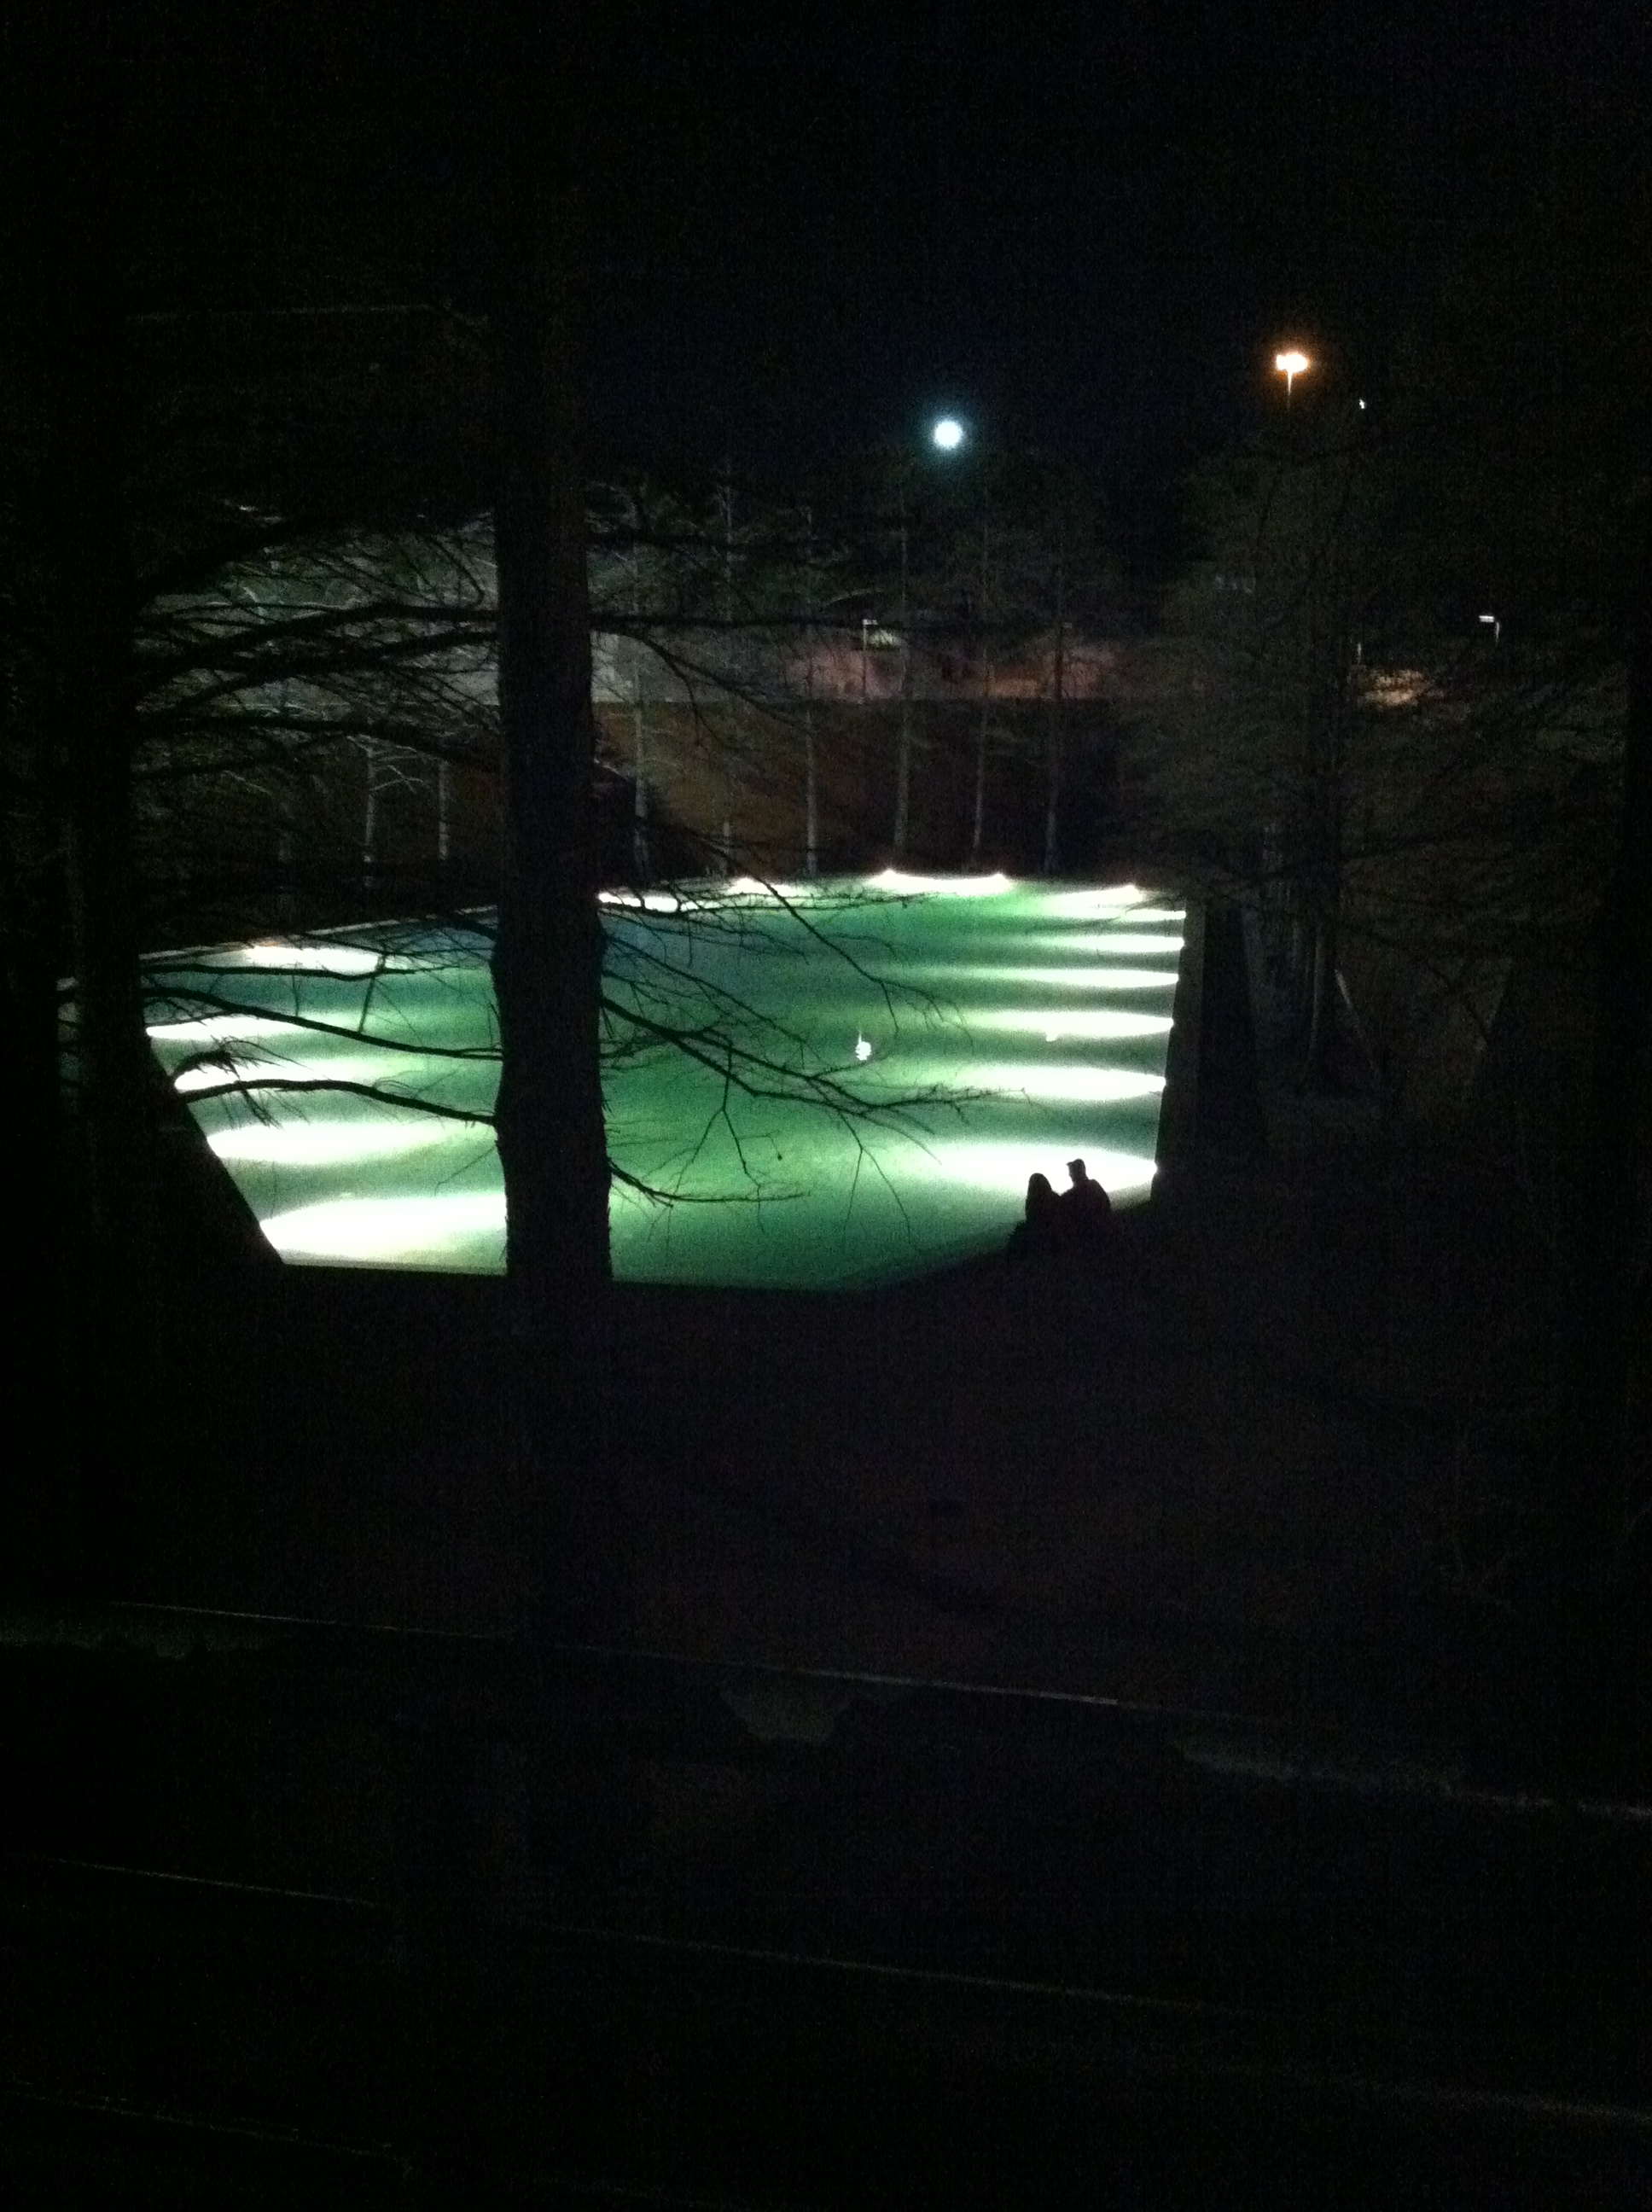 The Water Gardens at night are epic. Especially the quiet pool.